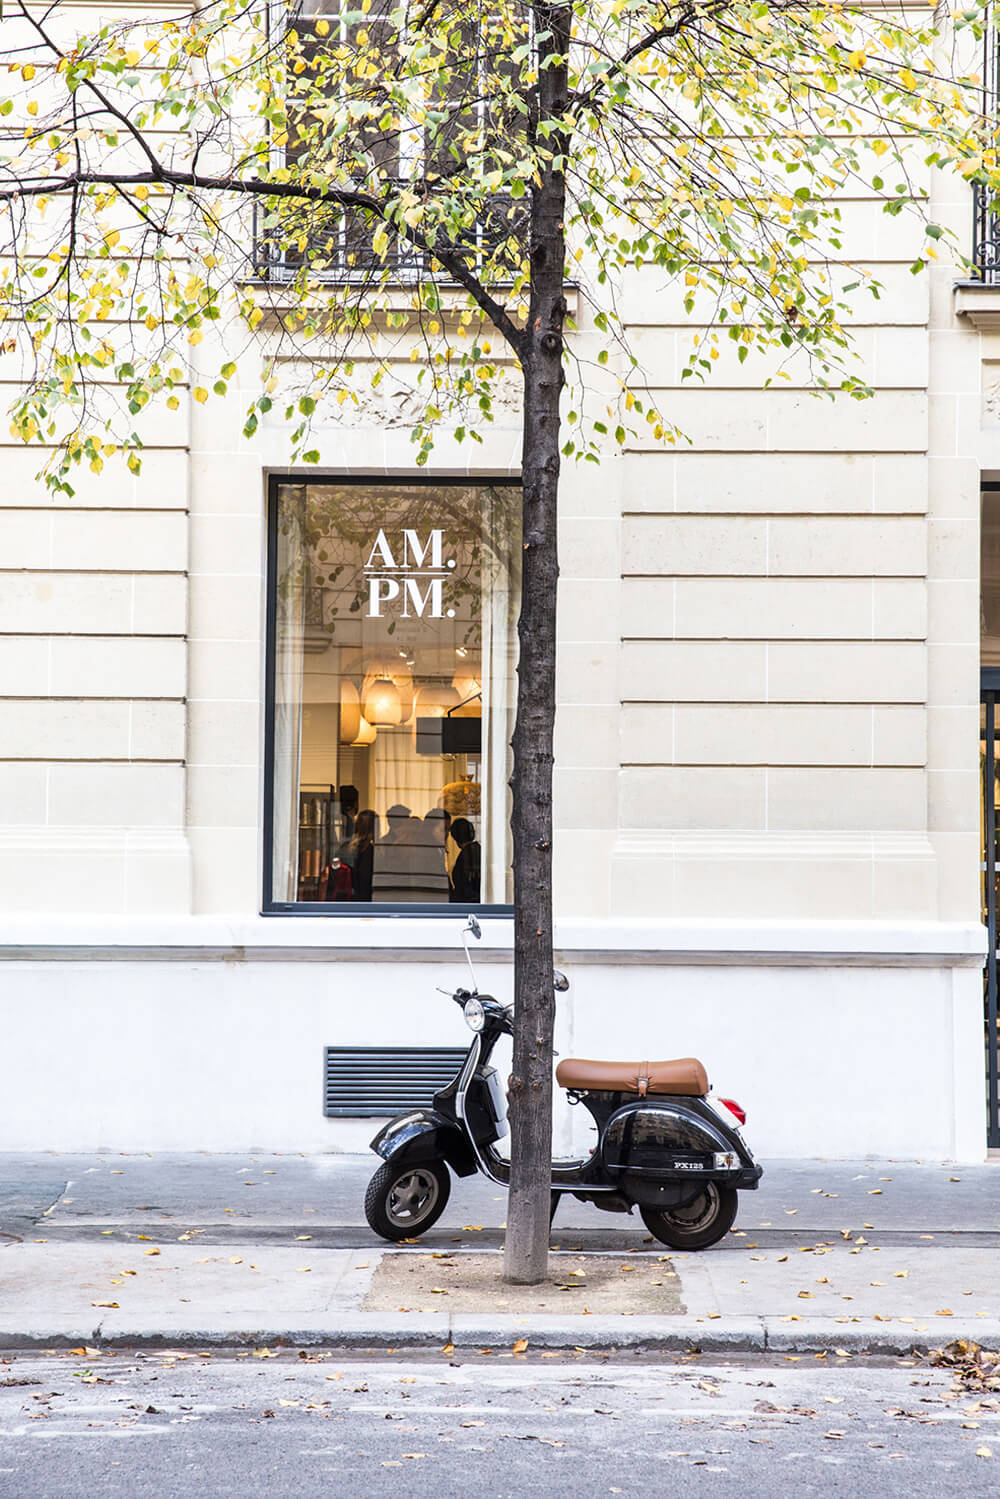 La nouvelle boutique AM.PM. à Paris - FrenchyFancy